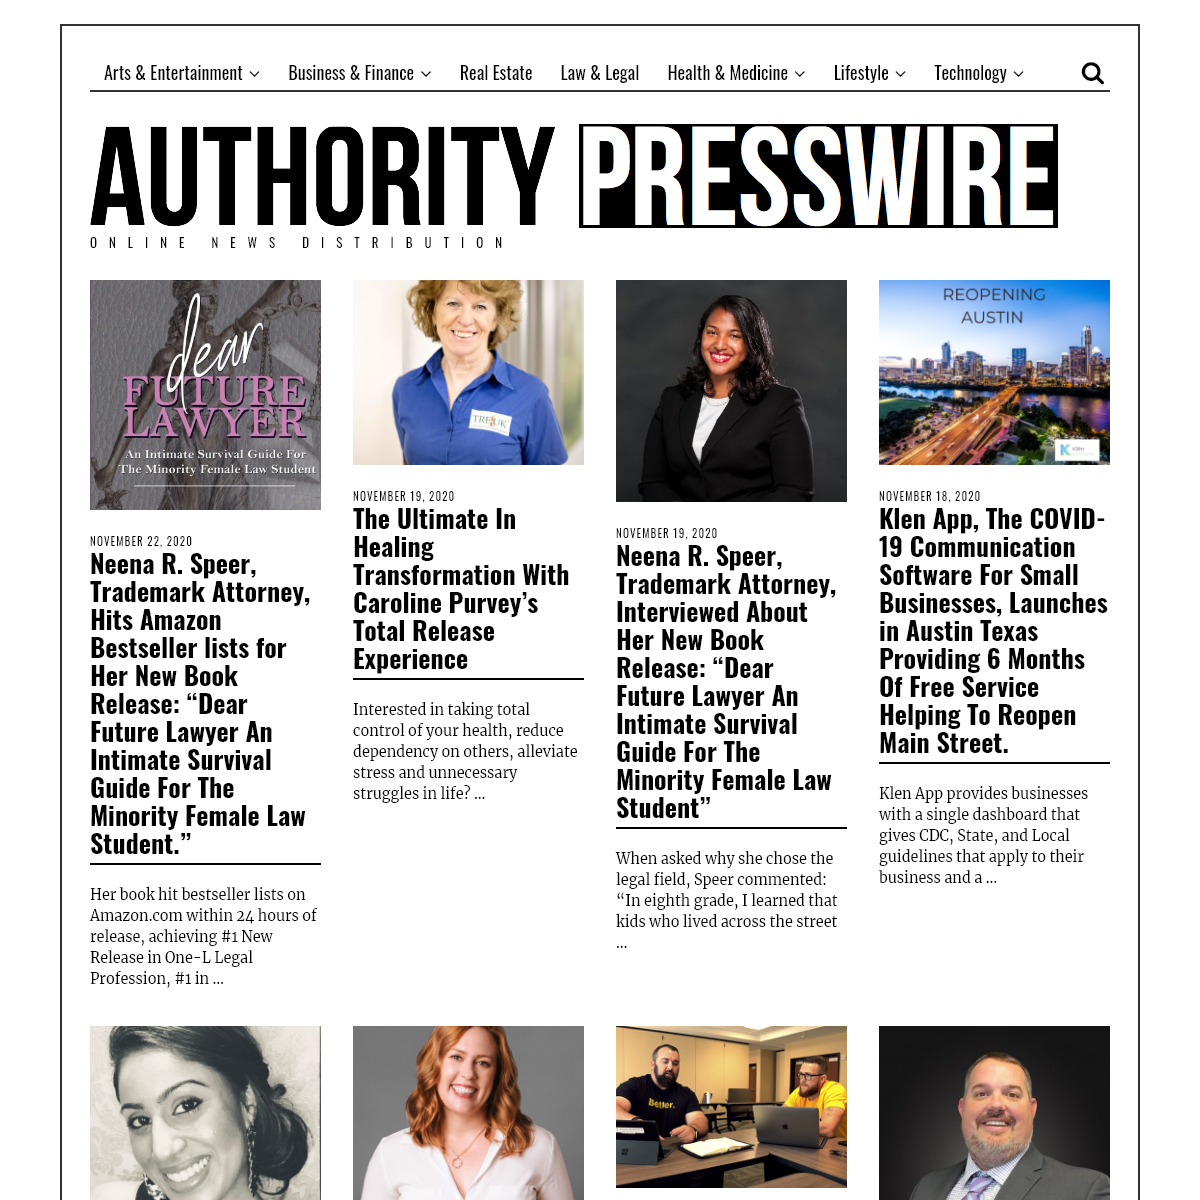 Authority Press Wire - Online News Distribution